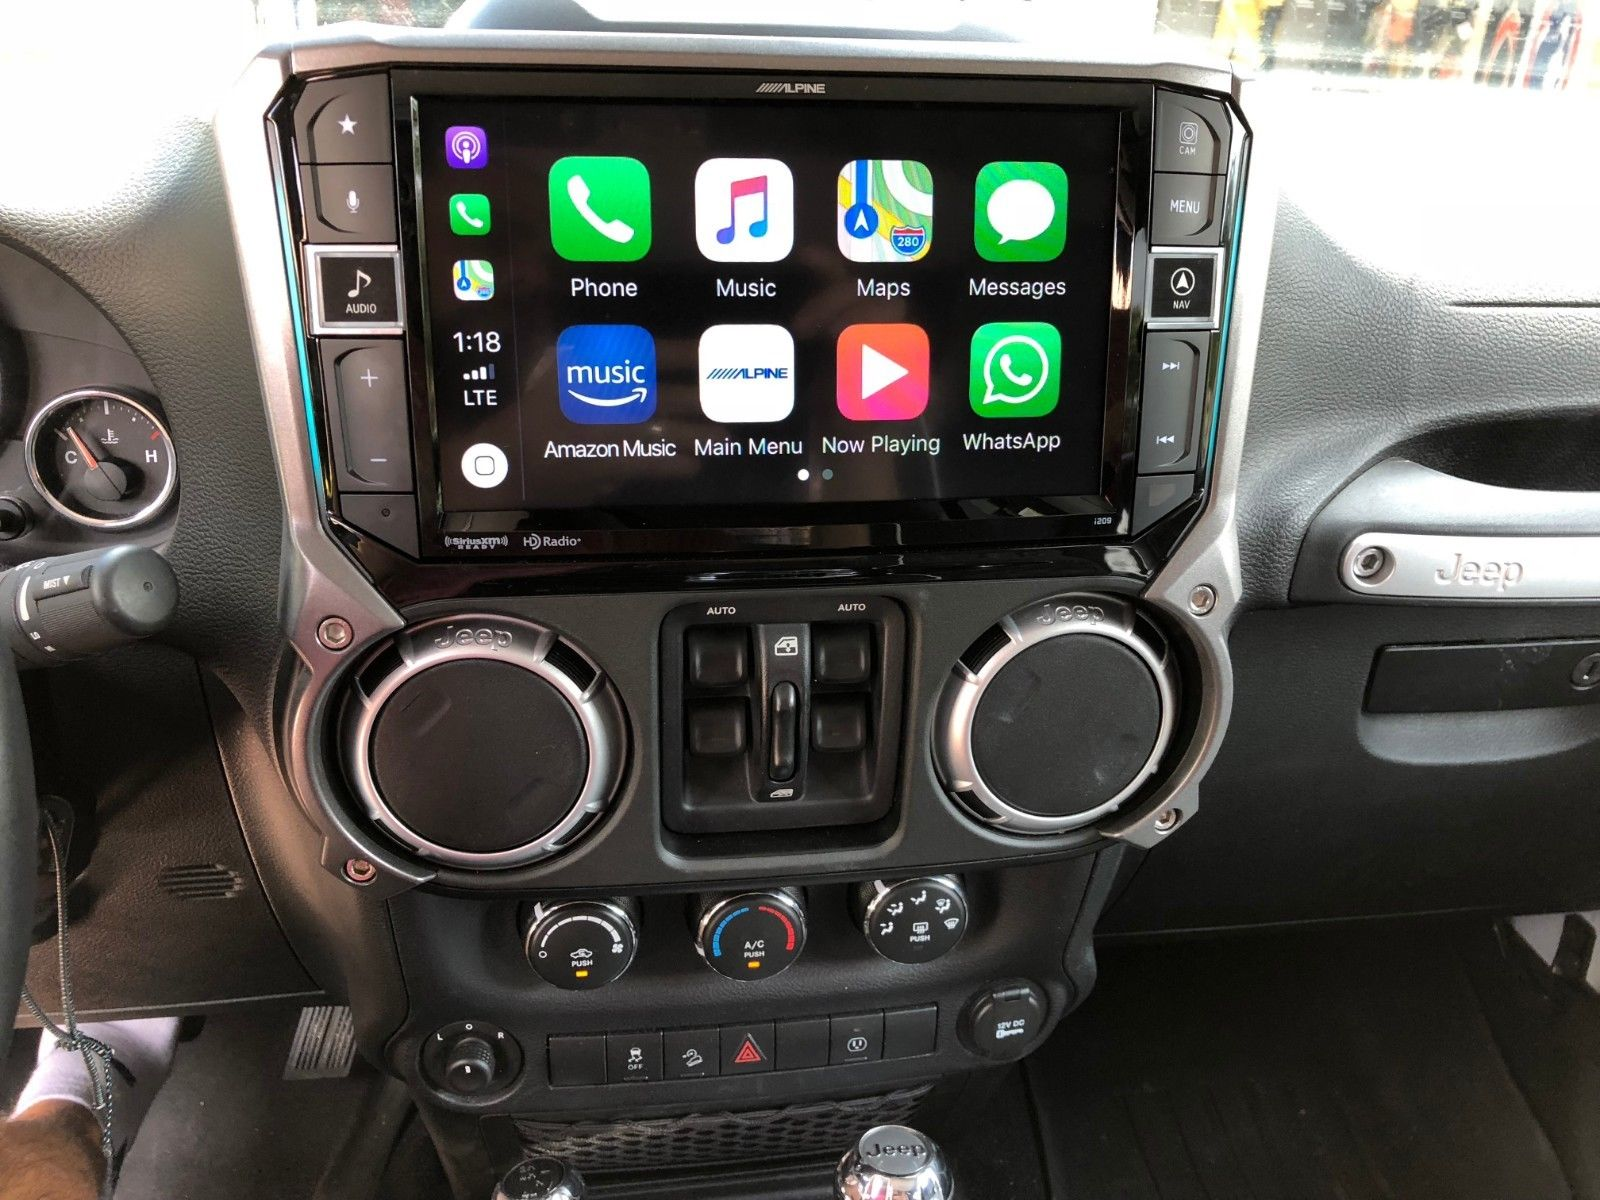 Awesome 2015 Jeep Wrangler Sahara Unlimited 4X4 Fully Custom 4×4, Lifted,  Apple Carplay, Android Auto, Rear Camera, New Top MORE 2019